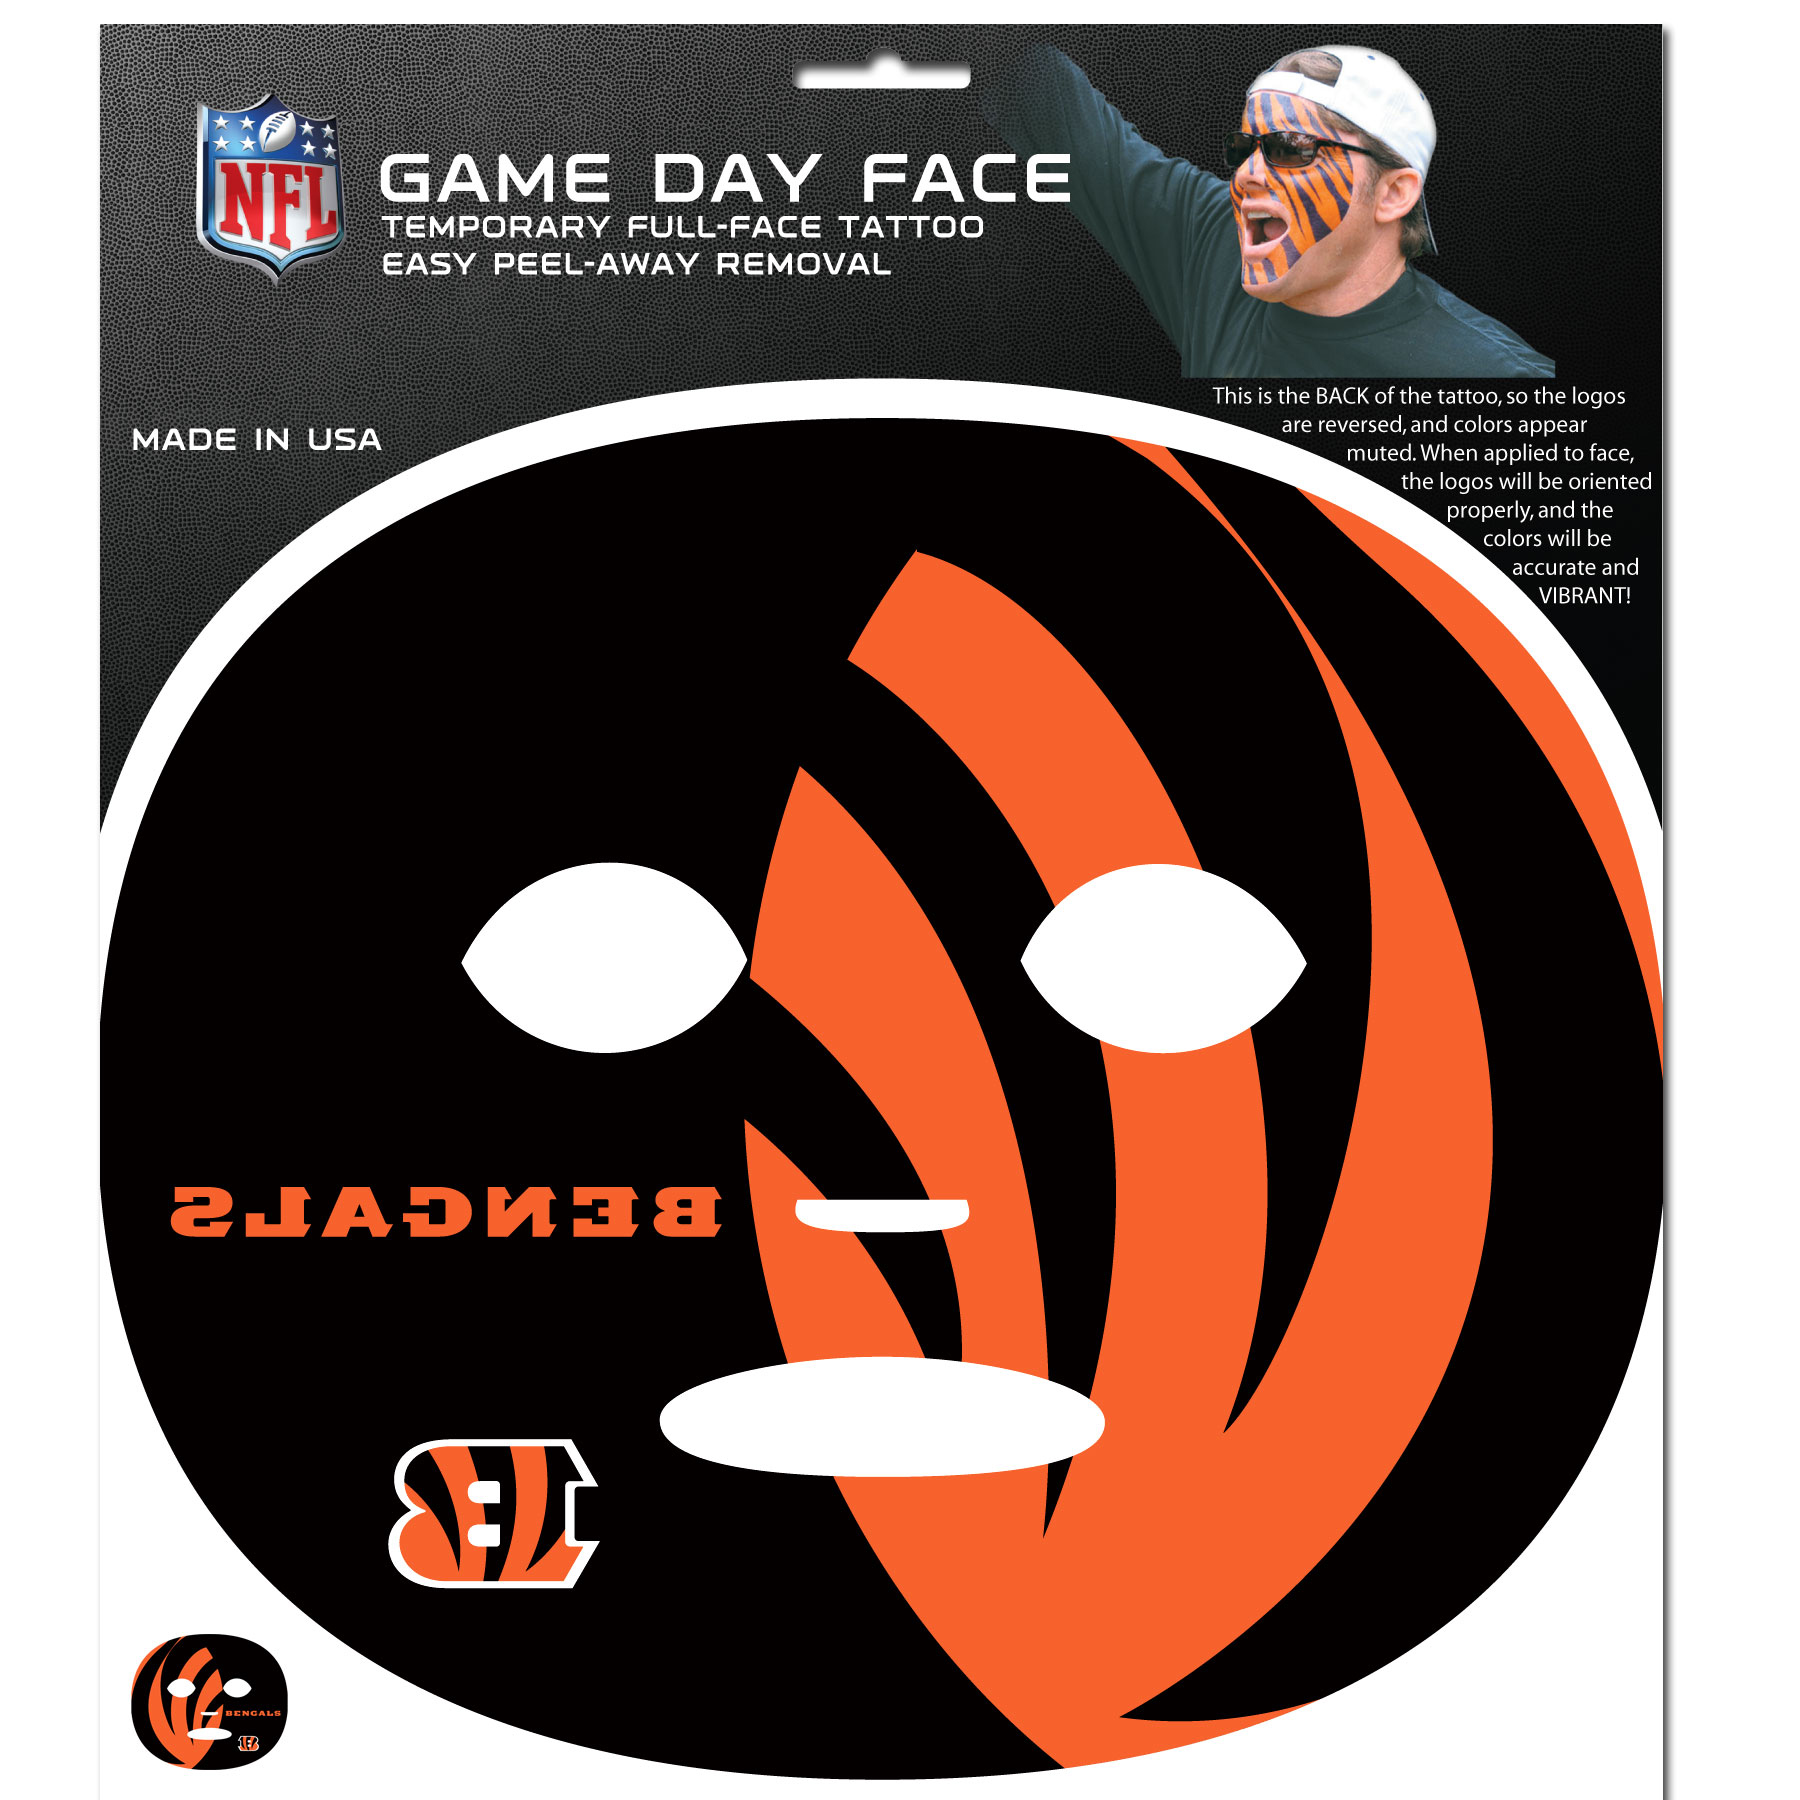 Cincinnati Bengals Set of 4 Game Day Faces - No better way to show your team pride than by painting your face. Siskiyou's Game Day Face Temporary Tattoo isn't your typical face paint. It is a water based application that doesn't smudge, smear or sweat off while you're wearing it and easily peels off after you're done celebrating your team's big Win! The temporary tattoo is large enough to trim down to fit your face. Our Game Day Face Temporary Tattoo's are fun for fans of all ages. You may have seen our product before, these are the same Temporary Face Tattoos as pitched on ABC's Shark Tank.